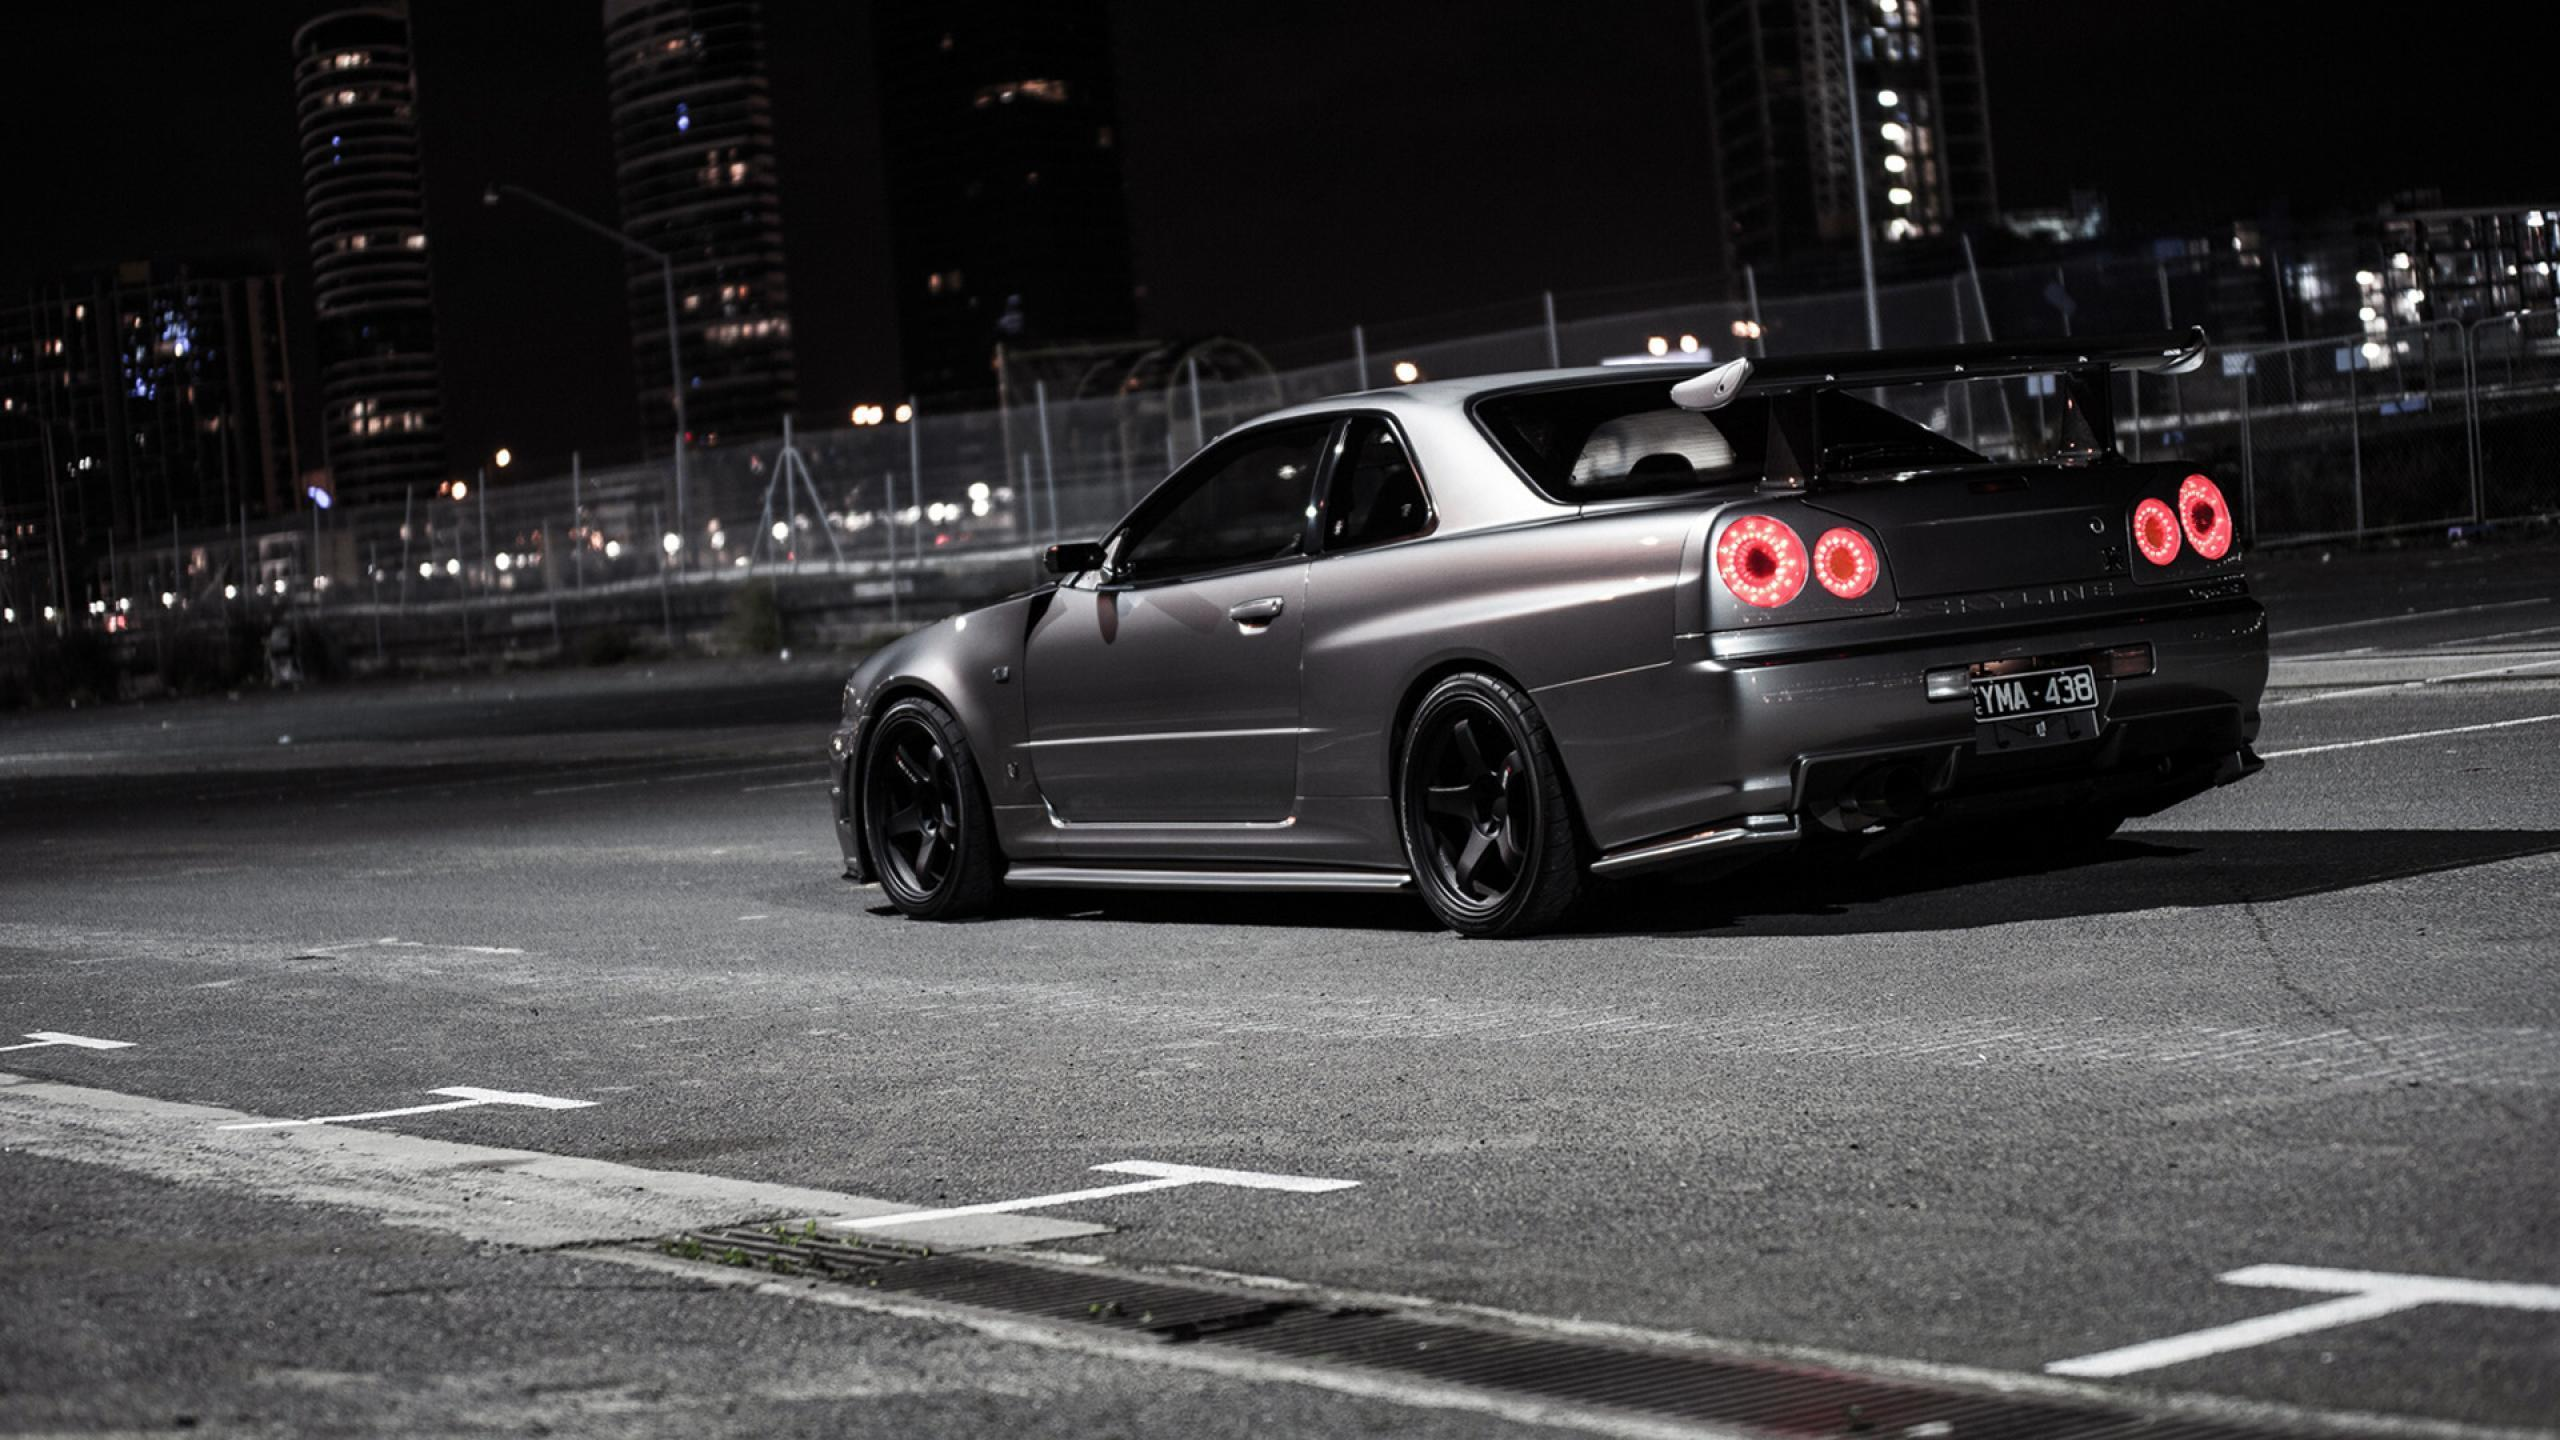 Nissan skyline gtr wallpapers wallpaper cave for Motor city performance plus